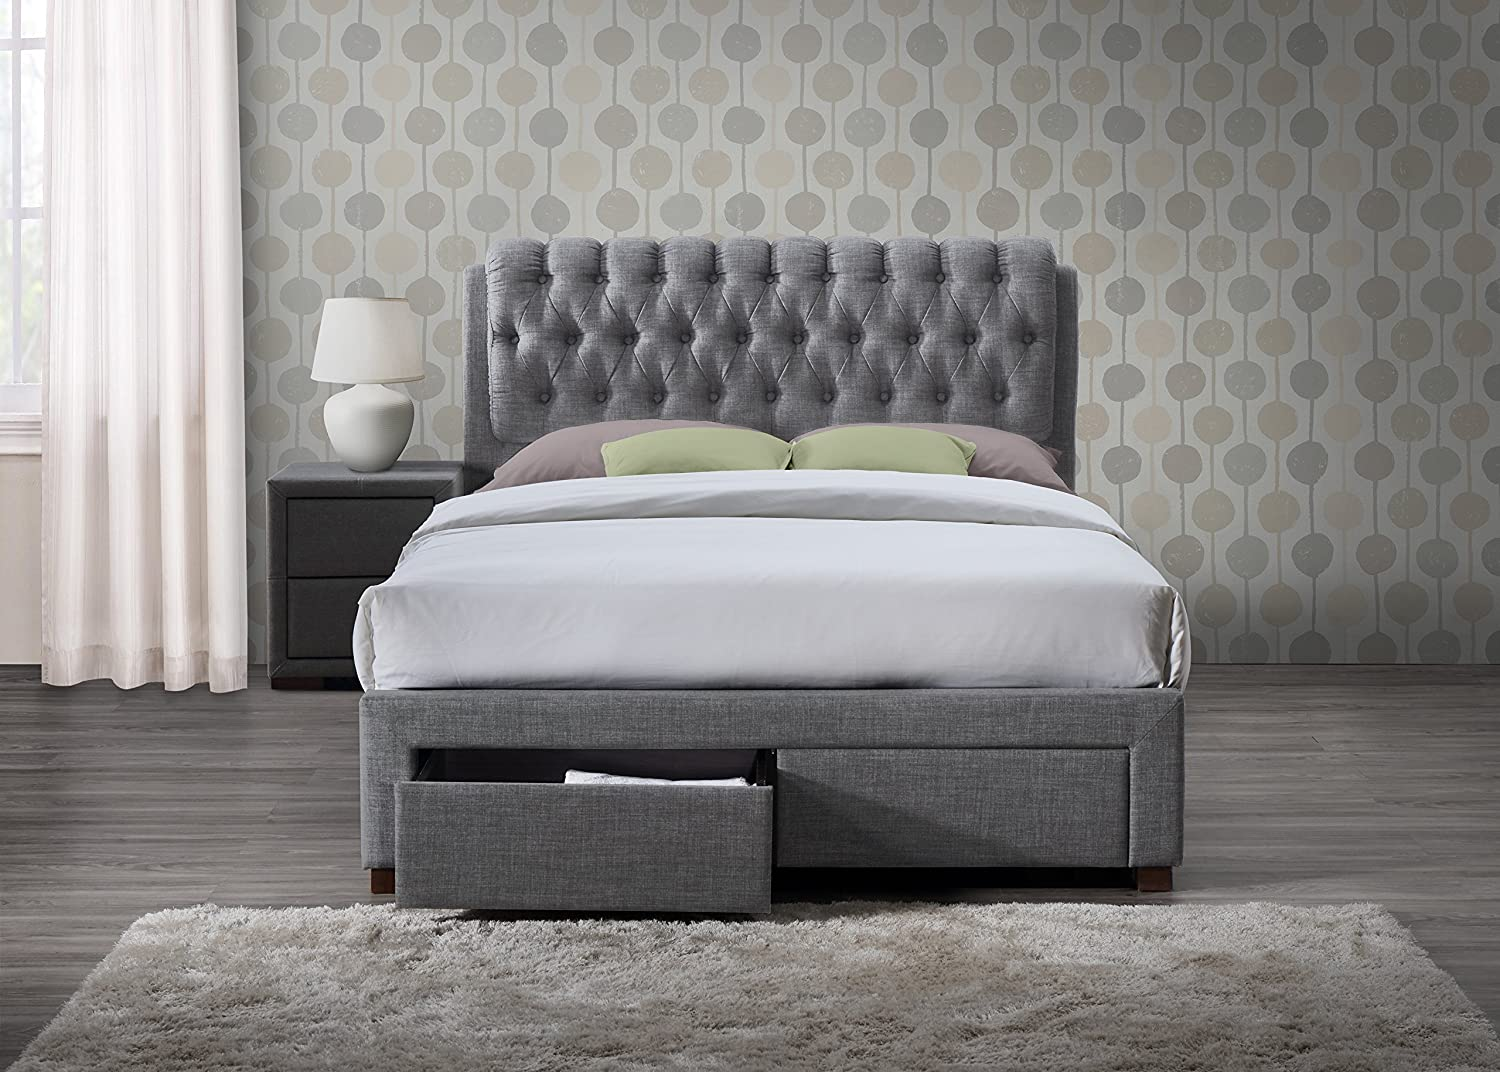 size wood design home ideas brown with drawers lacquered and light oak storage decorating drawer frame bed king